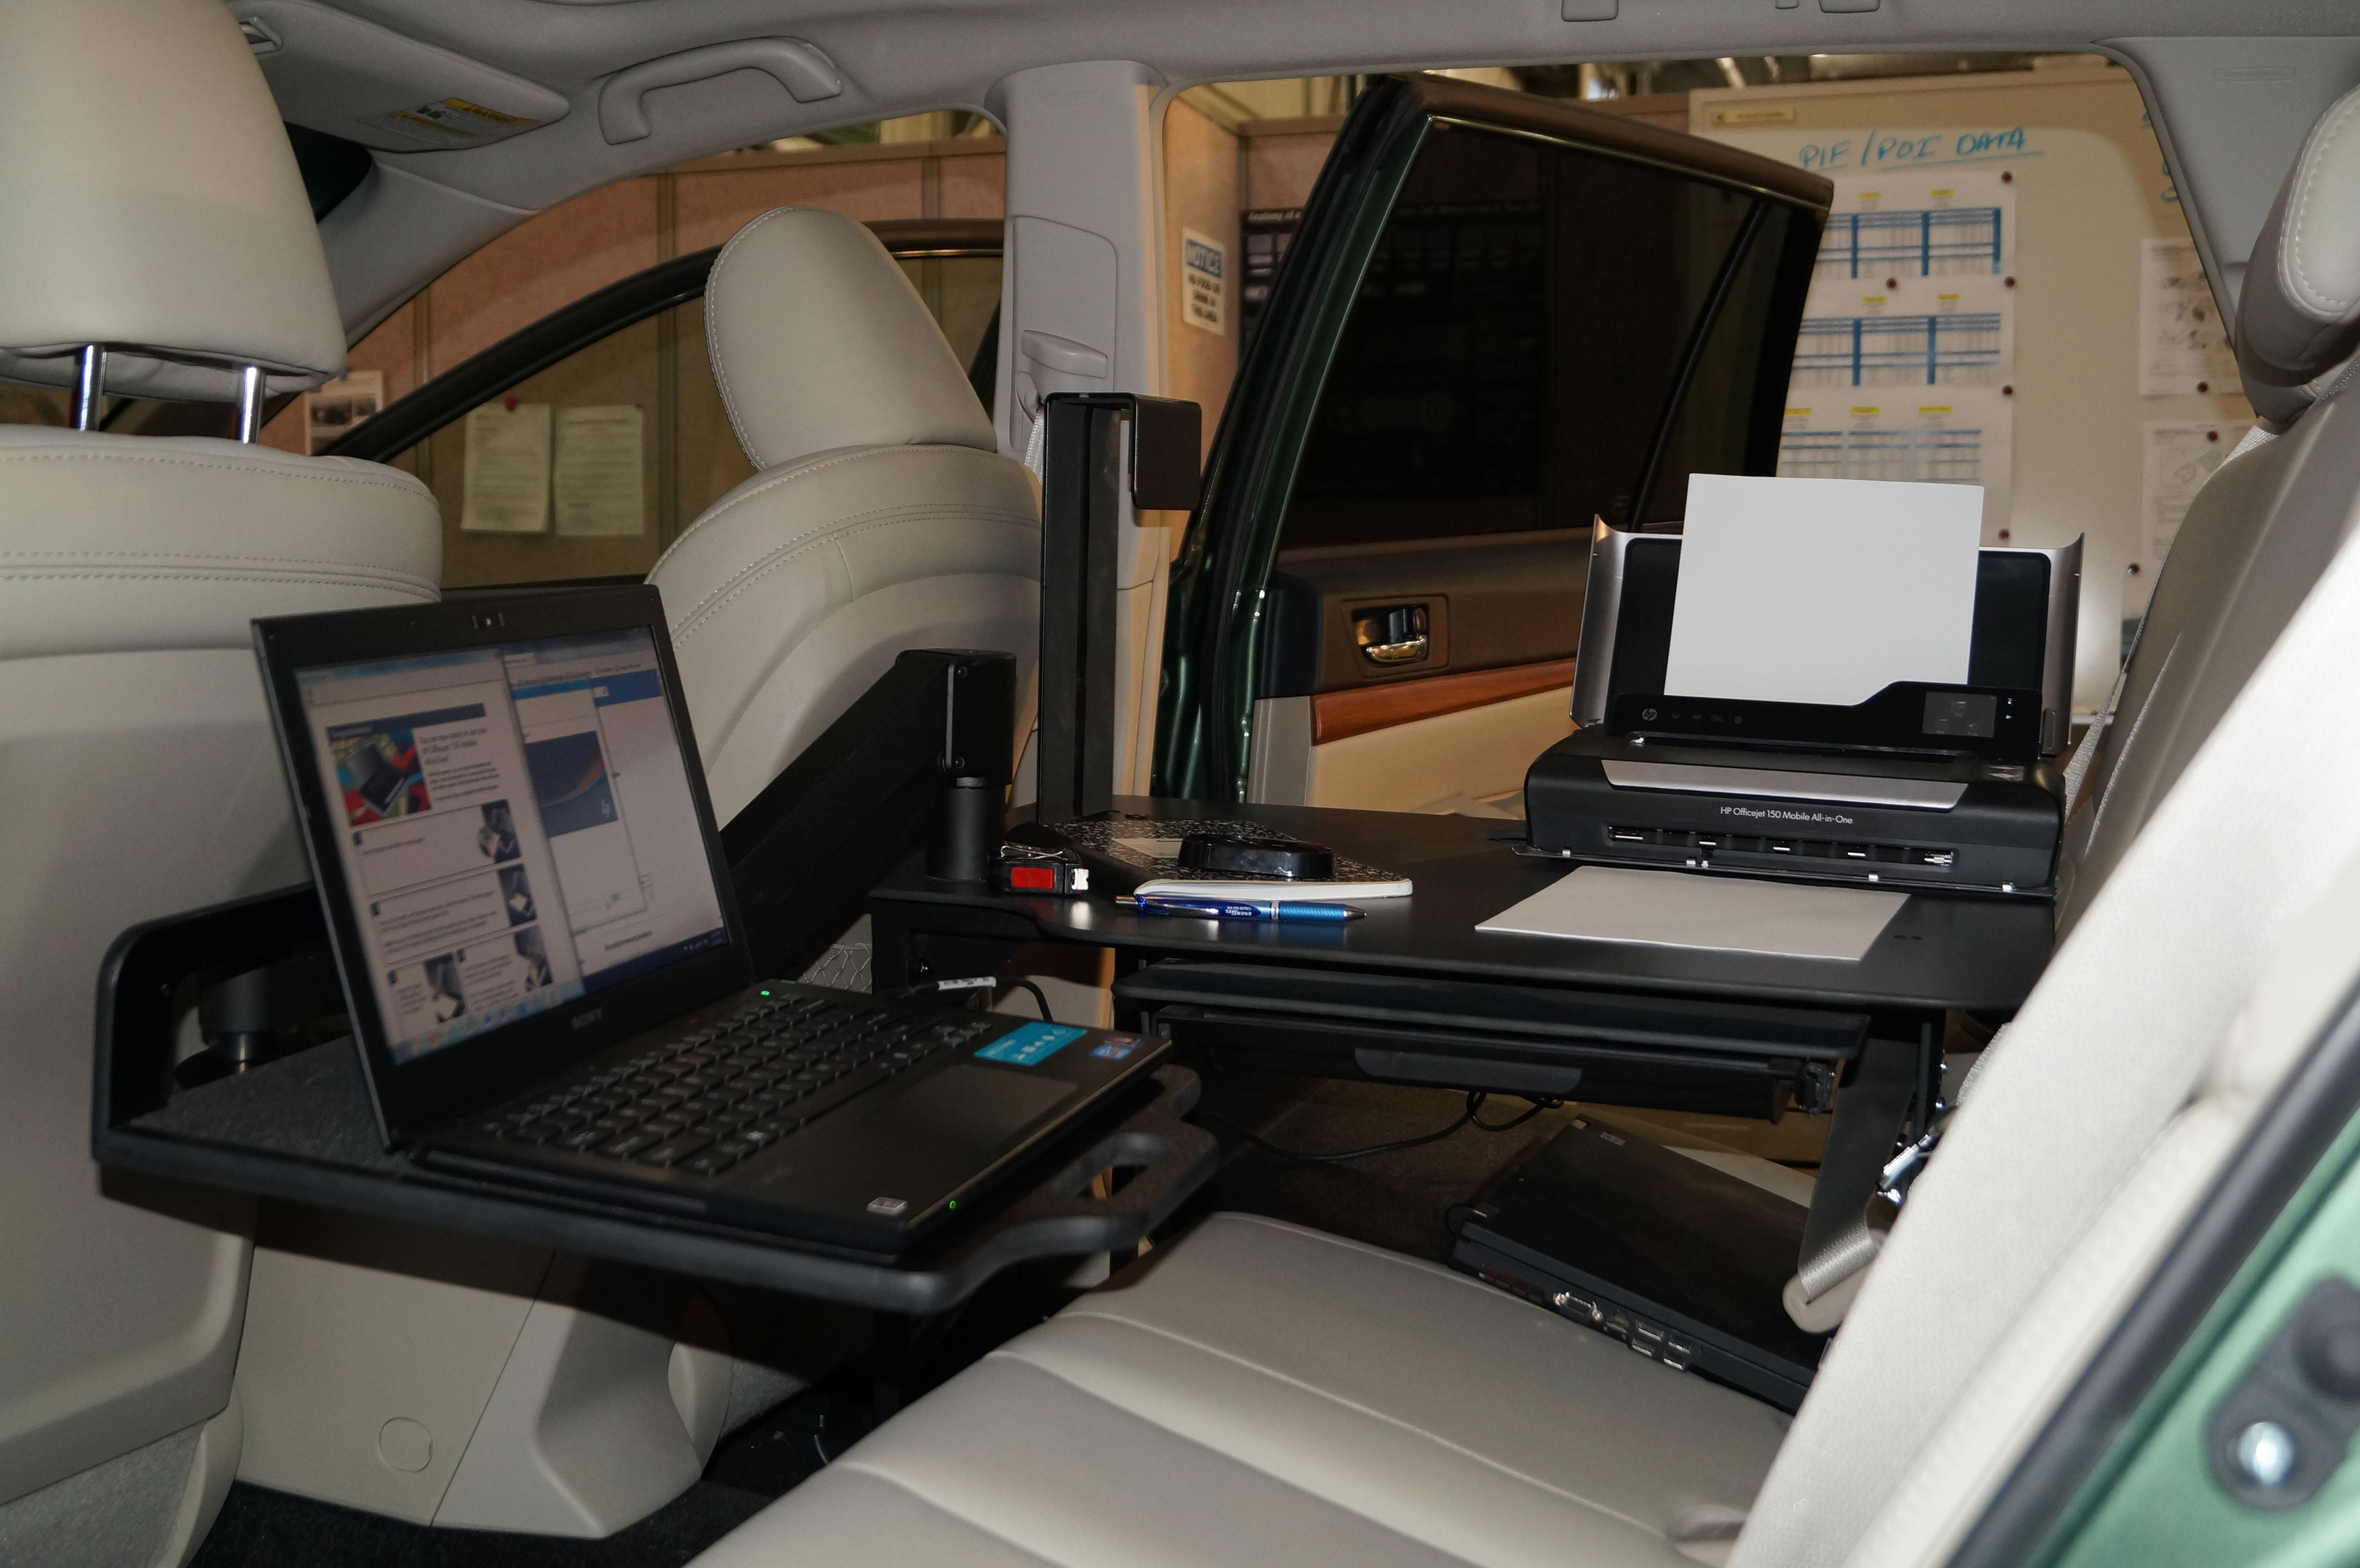 universal car desk equipped with a laptop and printer to create a